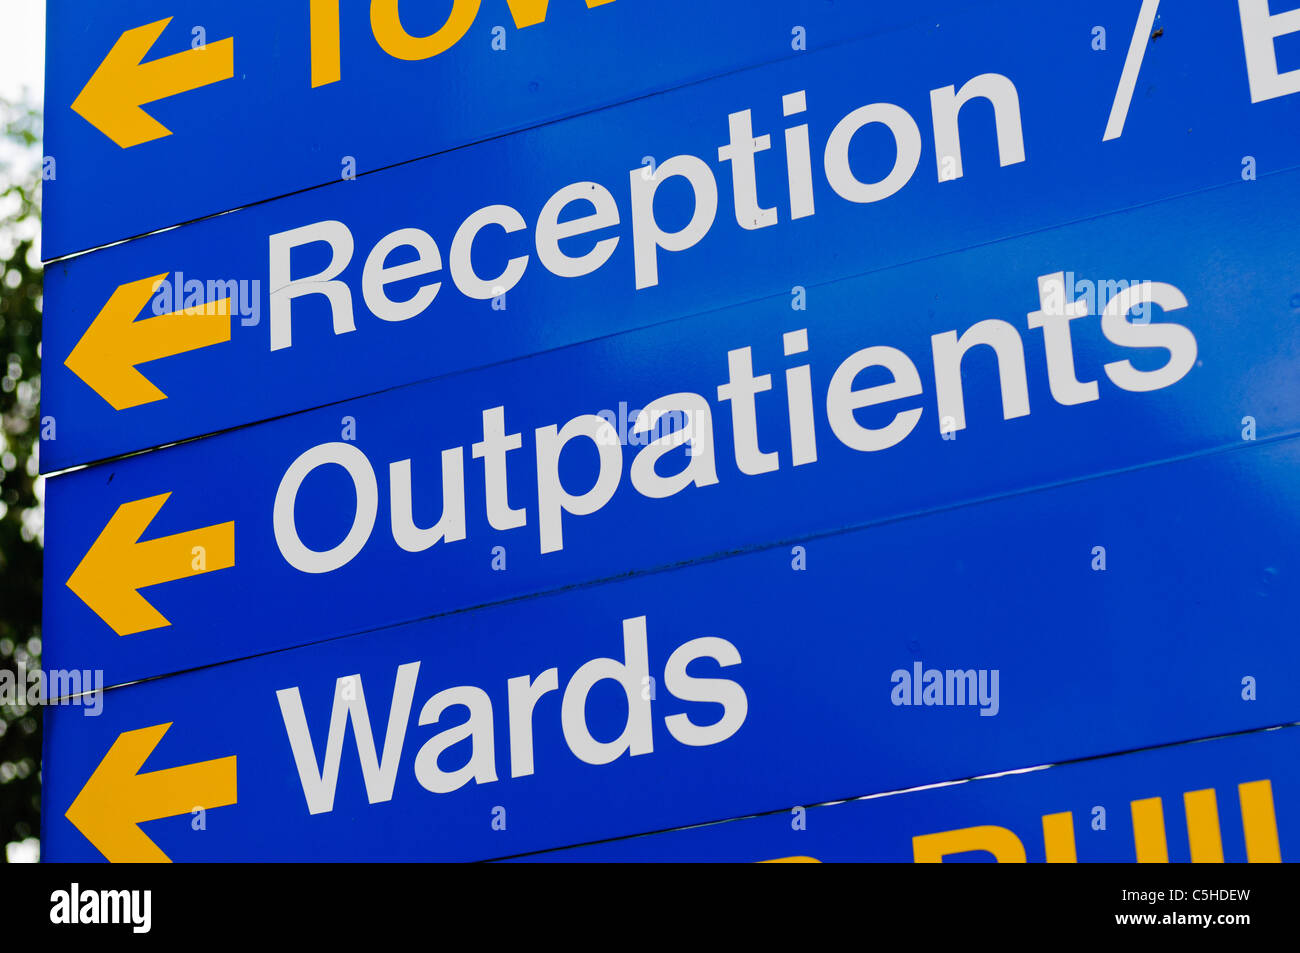 Sign in a hospital directing visitors to reception, outpatients and wards. - Stock Image